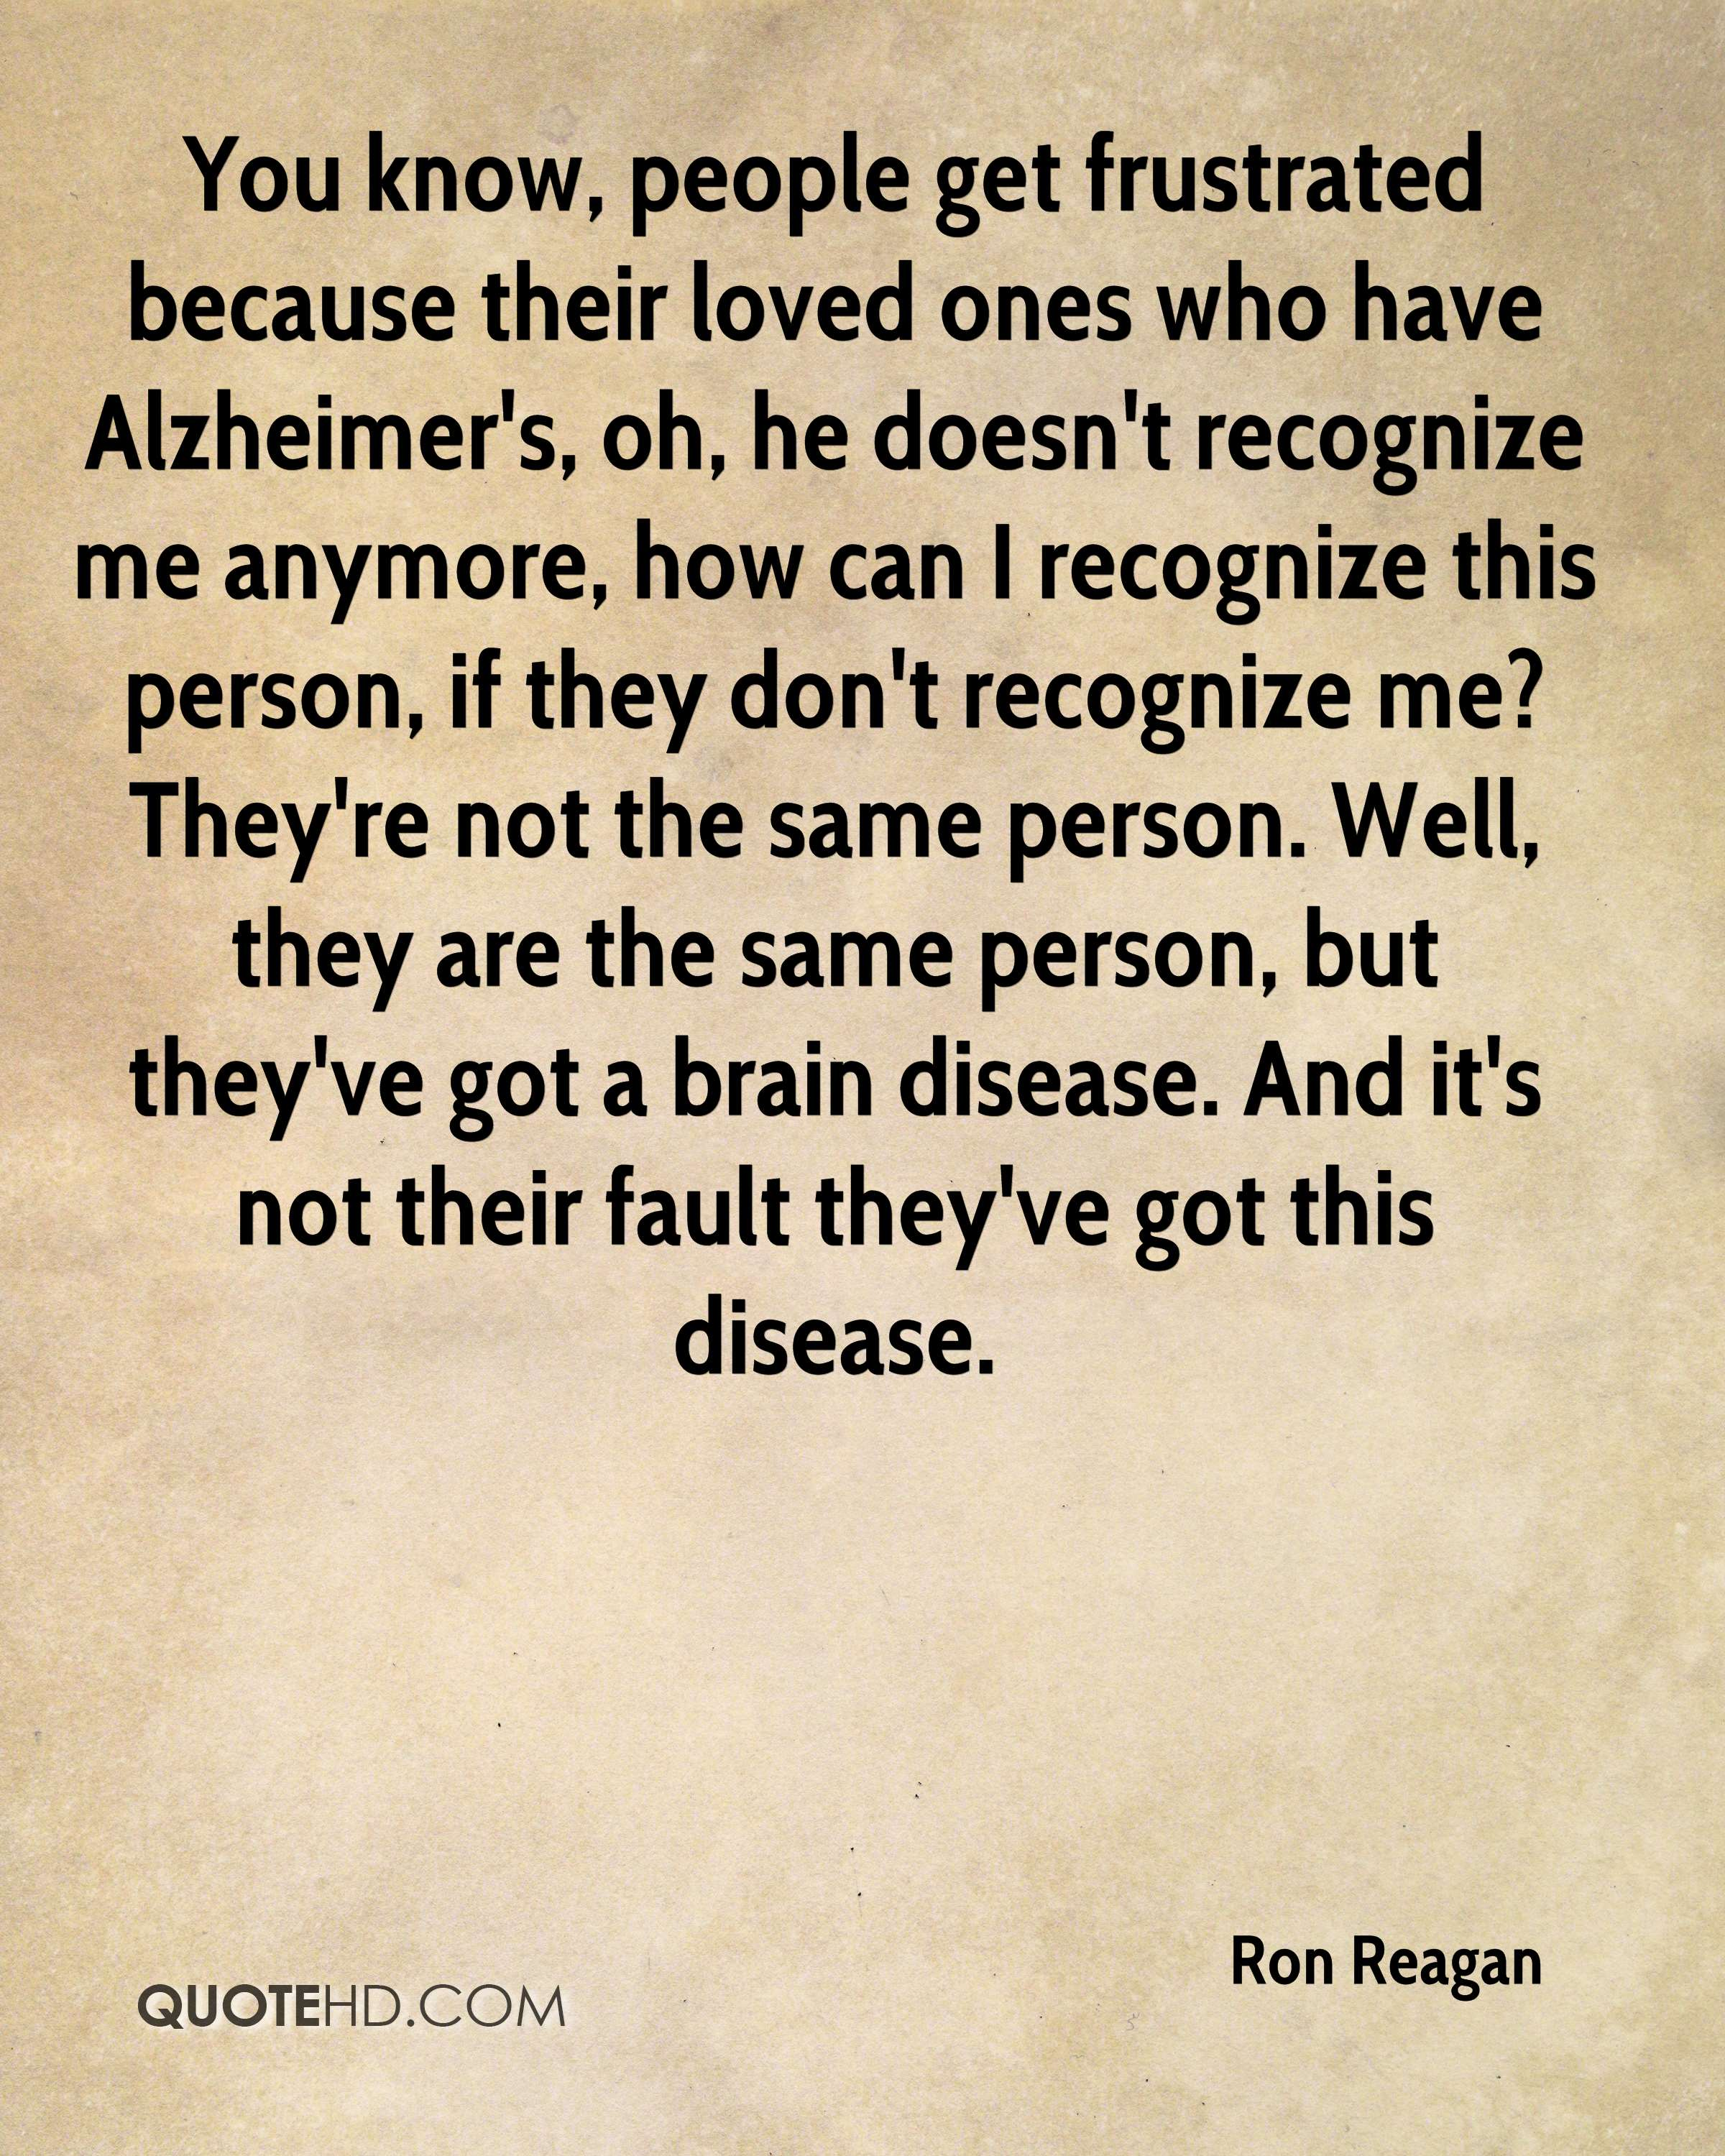 You know, people get frustrated because their loved ones who have Alzheimer's, oh, he doesn't recognize me anymore, how can I recognize this person, if they don't recognize me? They're not the same person. Well, they are the same person, but they've got a brain disease. And it's not their fault they've got this disease.